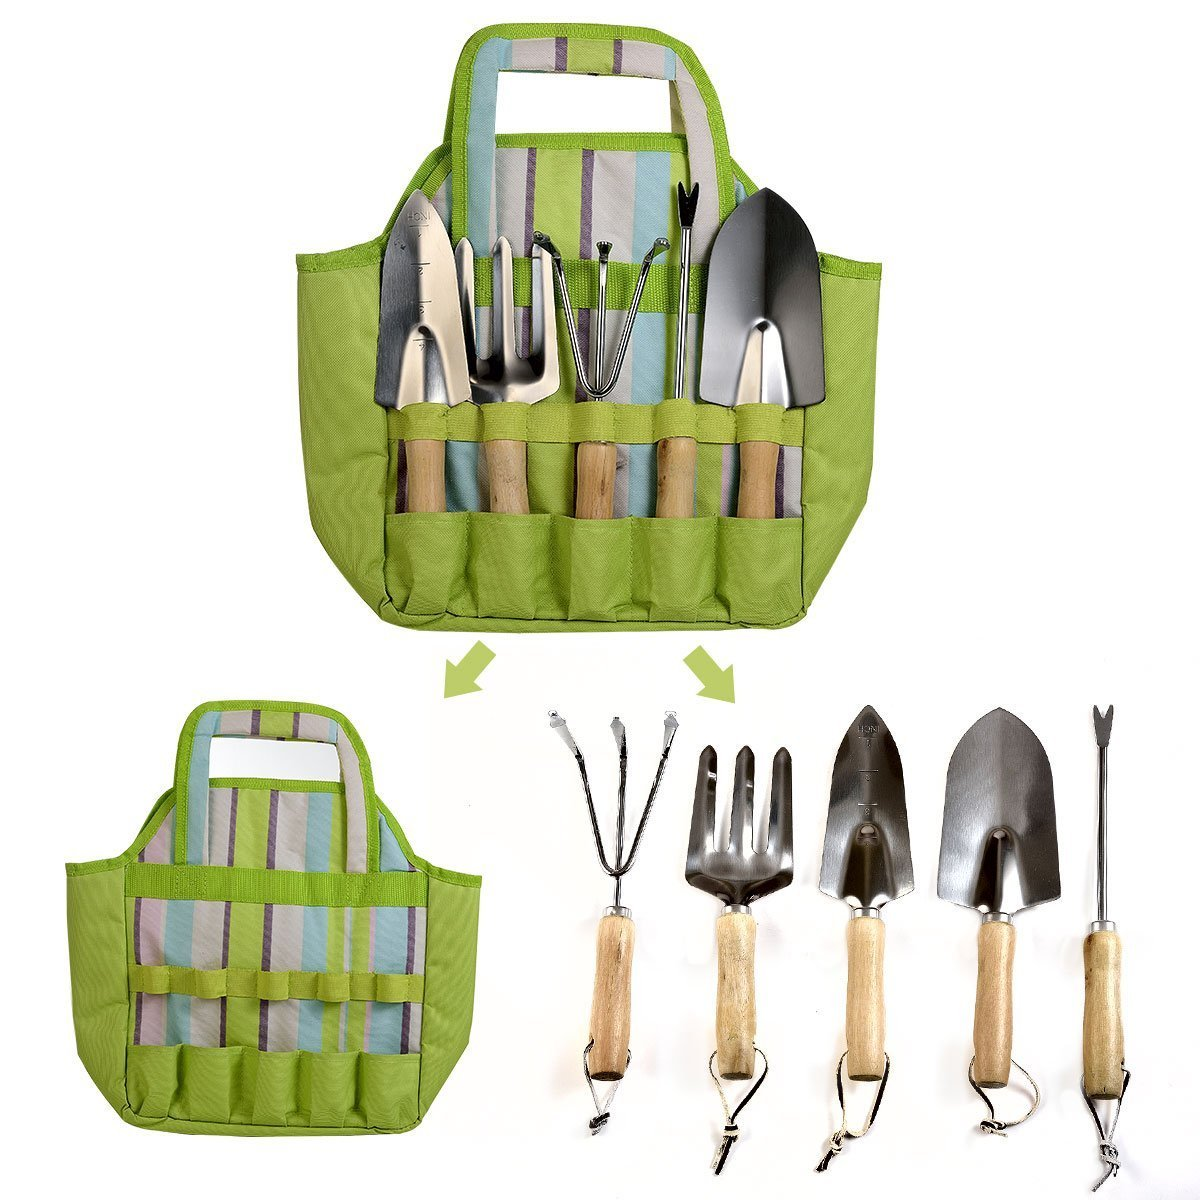 Garden Tools Set 7 Piece with Tote Bag Including Weeder, Rake, Trowel, Transplanter, Cultivator, Garden Tote Bag and Gloves Heavy Duty Cast-aluminum with Ergonomic Wood Handles (Light Green)